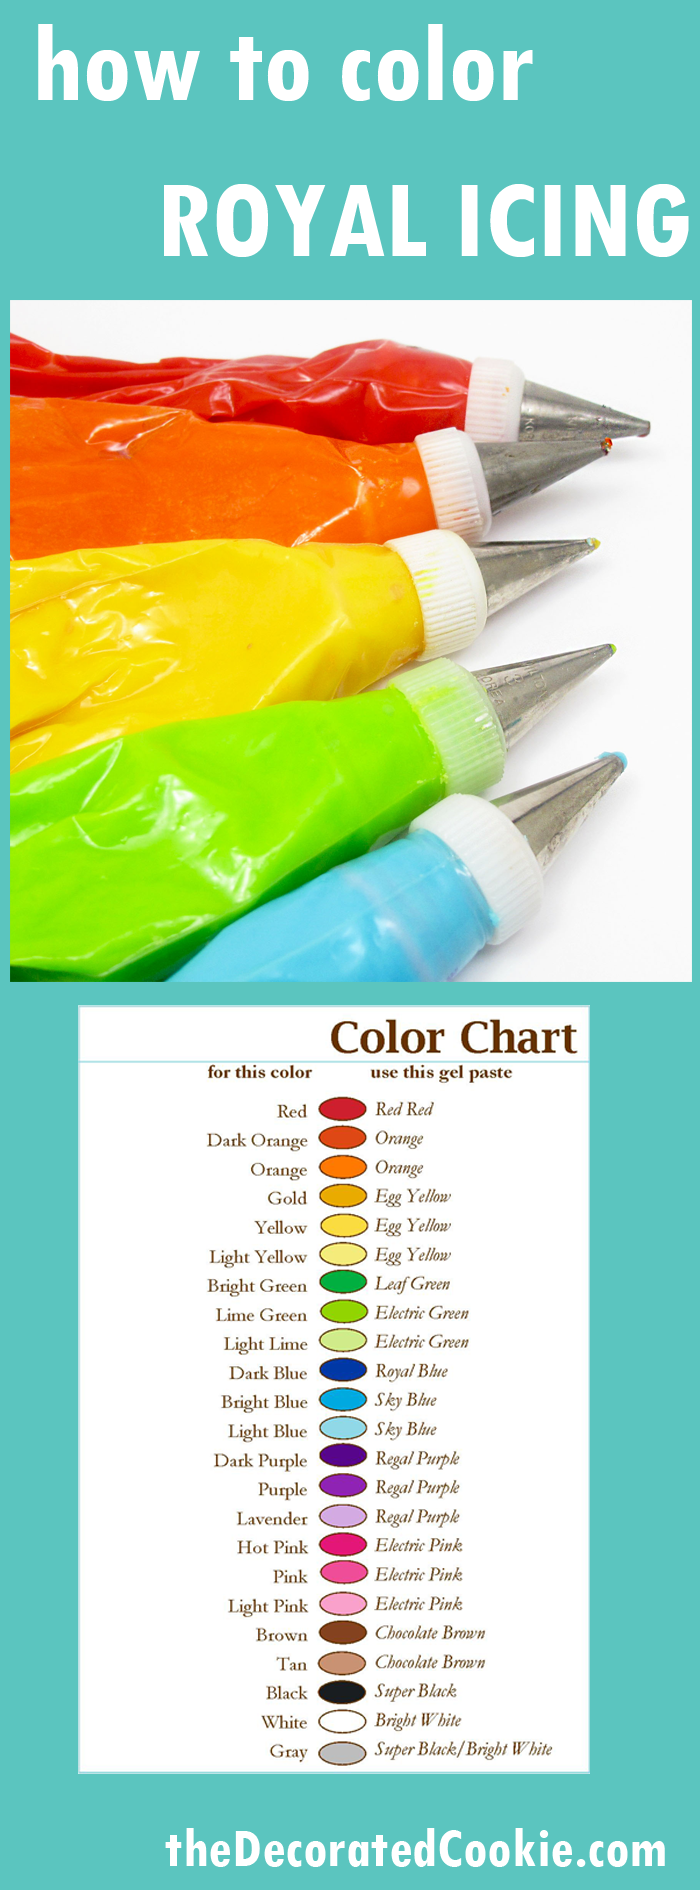 royal icing color chart royal icing cookie decorating and frostings